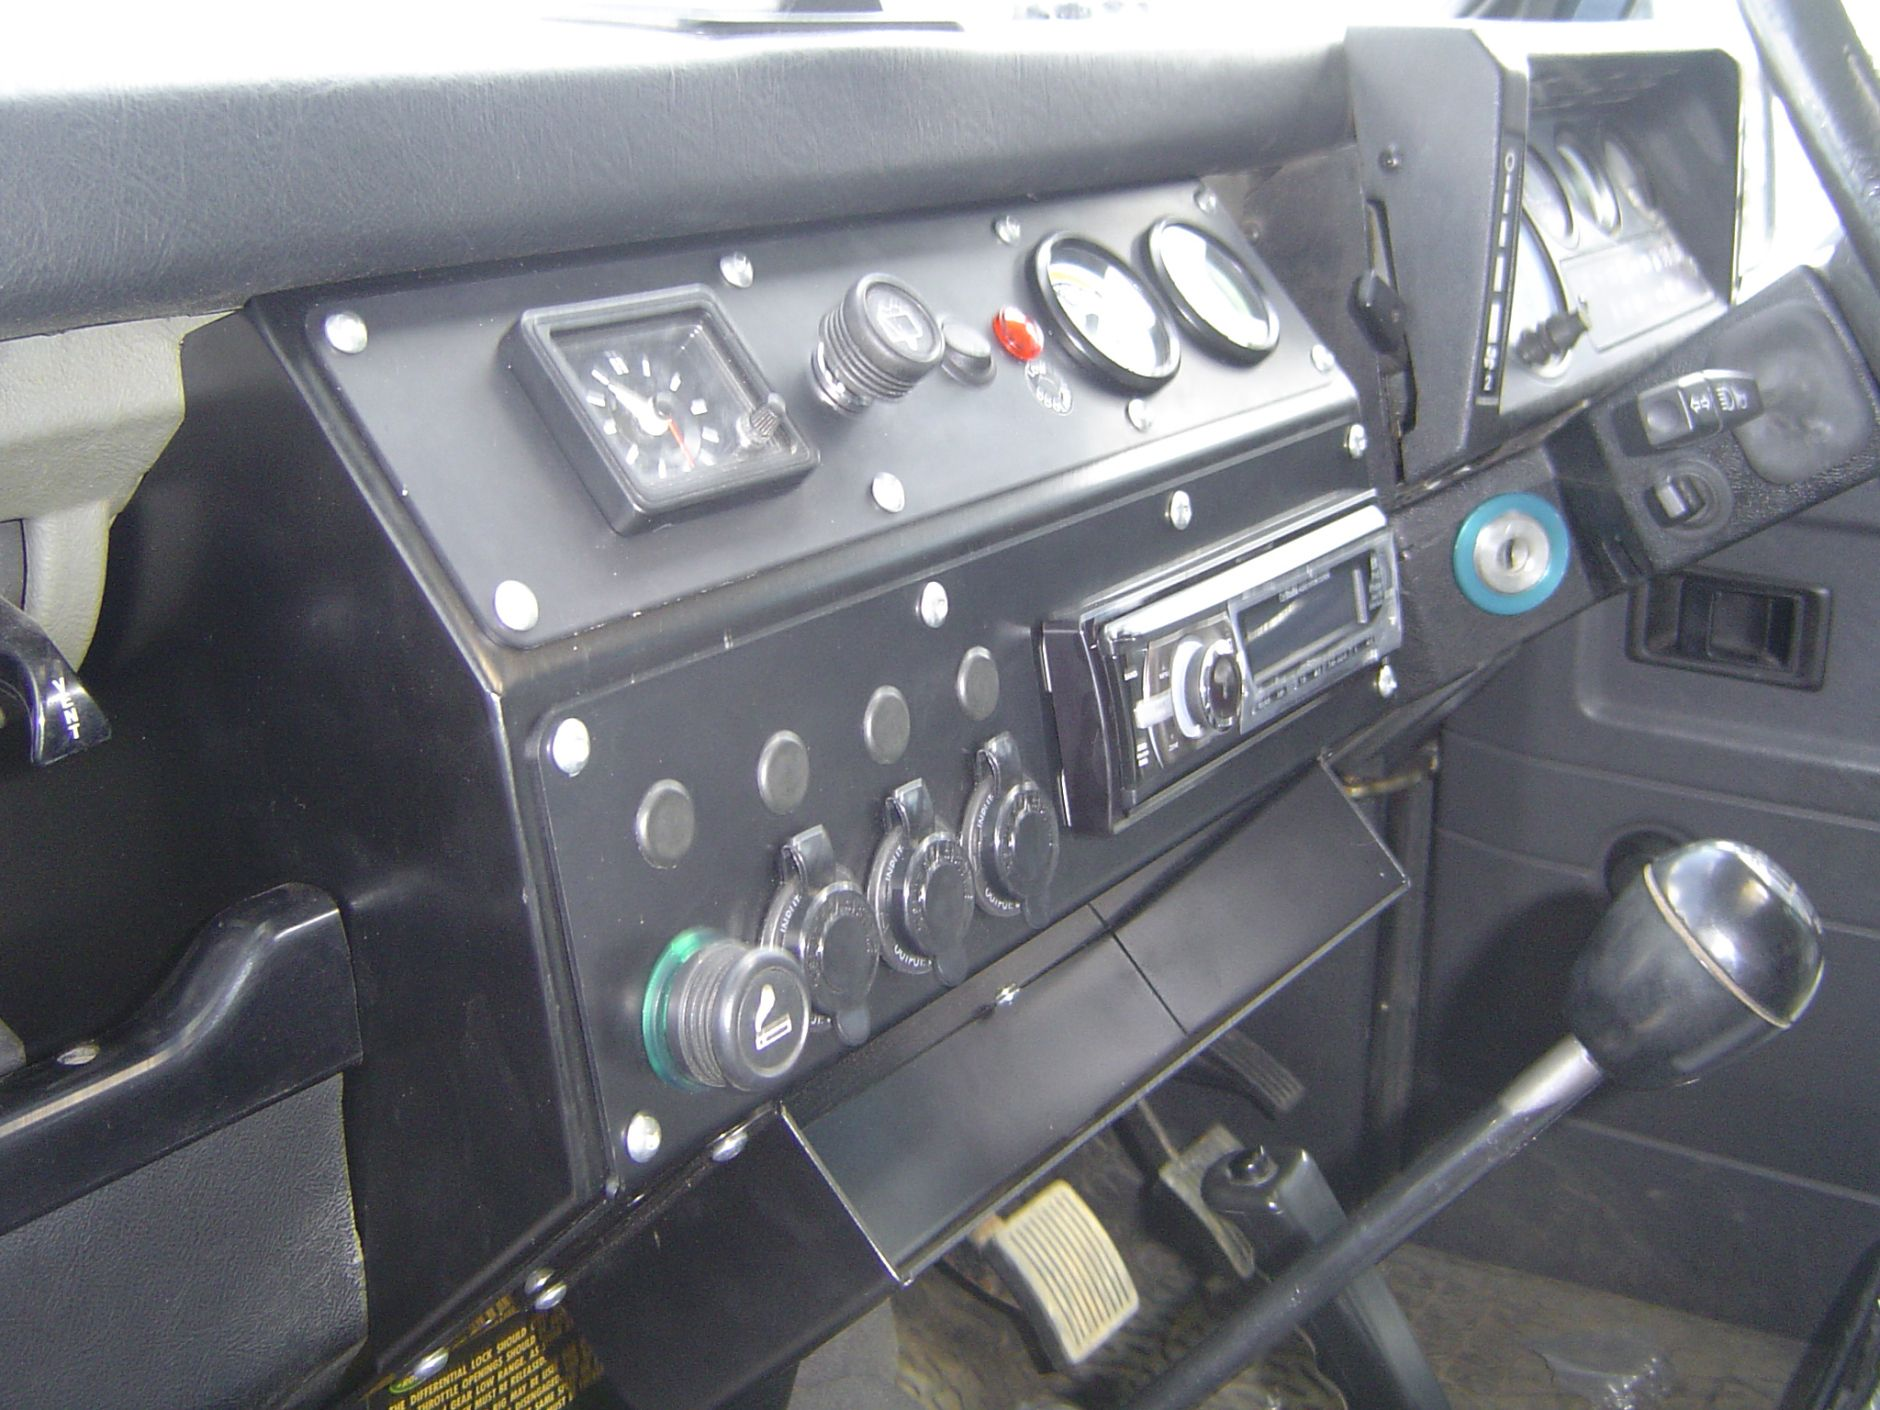 finest trim with defender stitch landrover rover the land whole new standard white a look take in and custom dash on black takes it dashboard nappa pin plastic